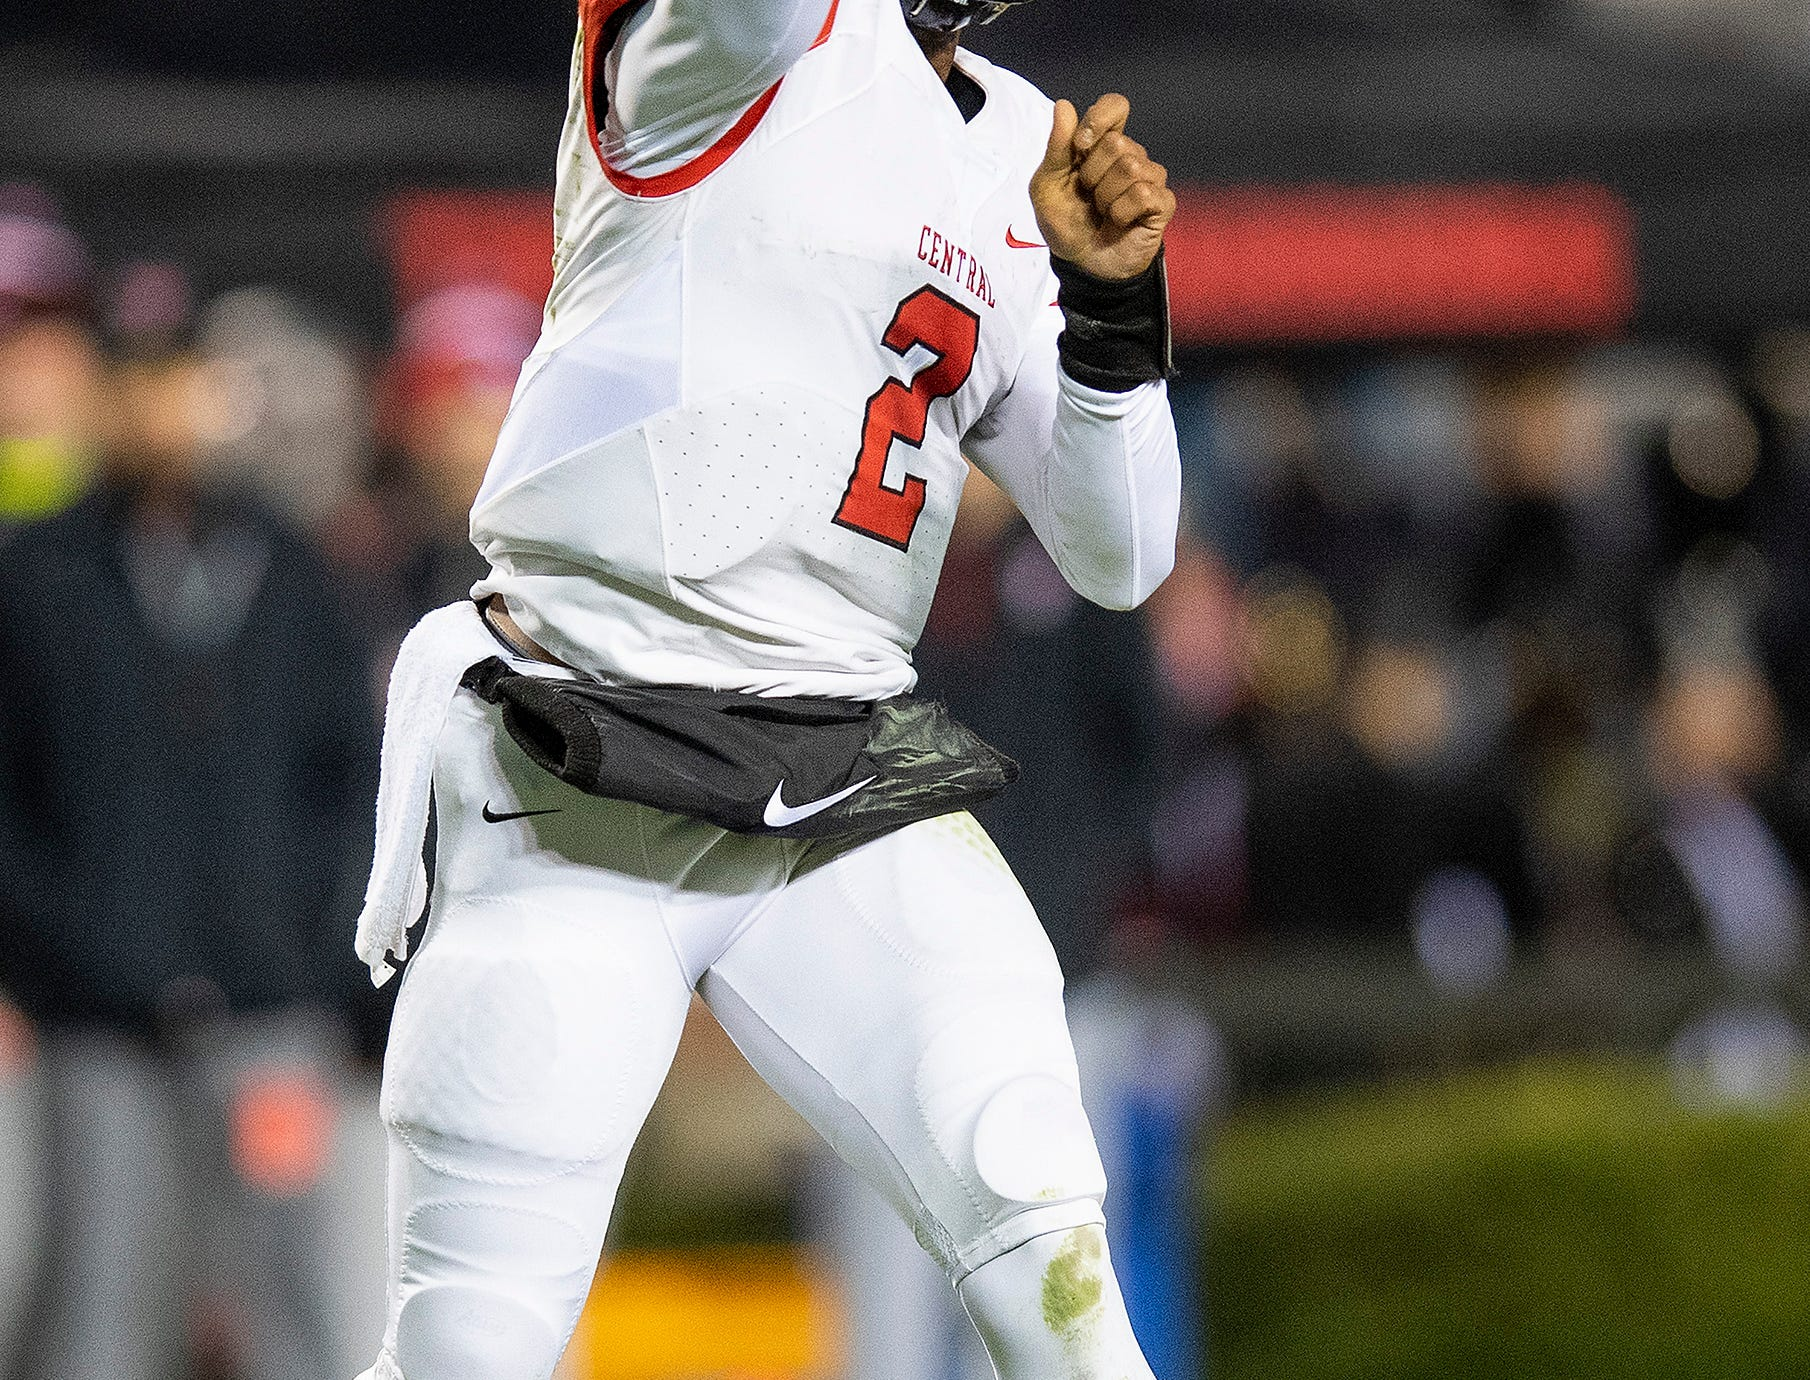 Central-Phenix City's Peter Parrish passes against Thompson during the AHSAA Class 7A State Championship Football Game at Jordan Hare Stadium in Auburn, Ala., on Wednesday evening December 5, 2018.